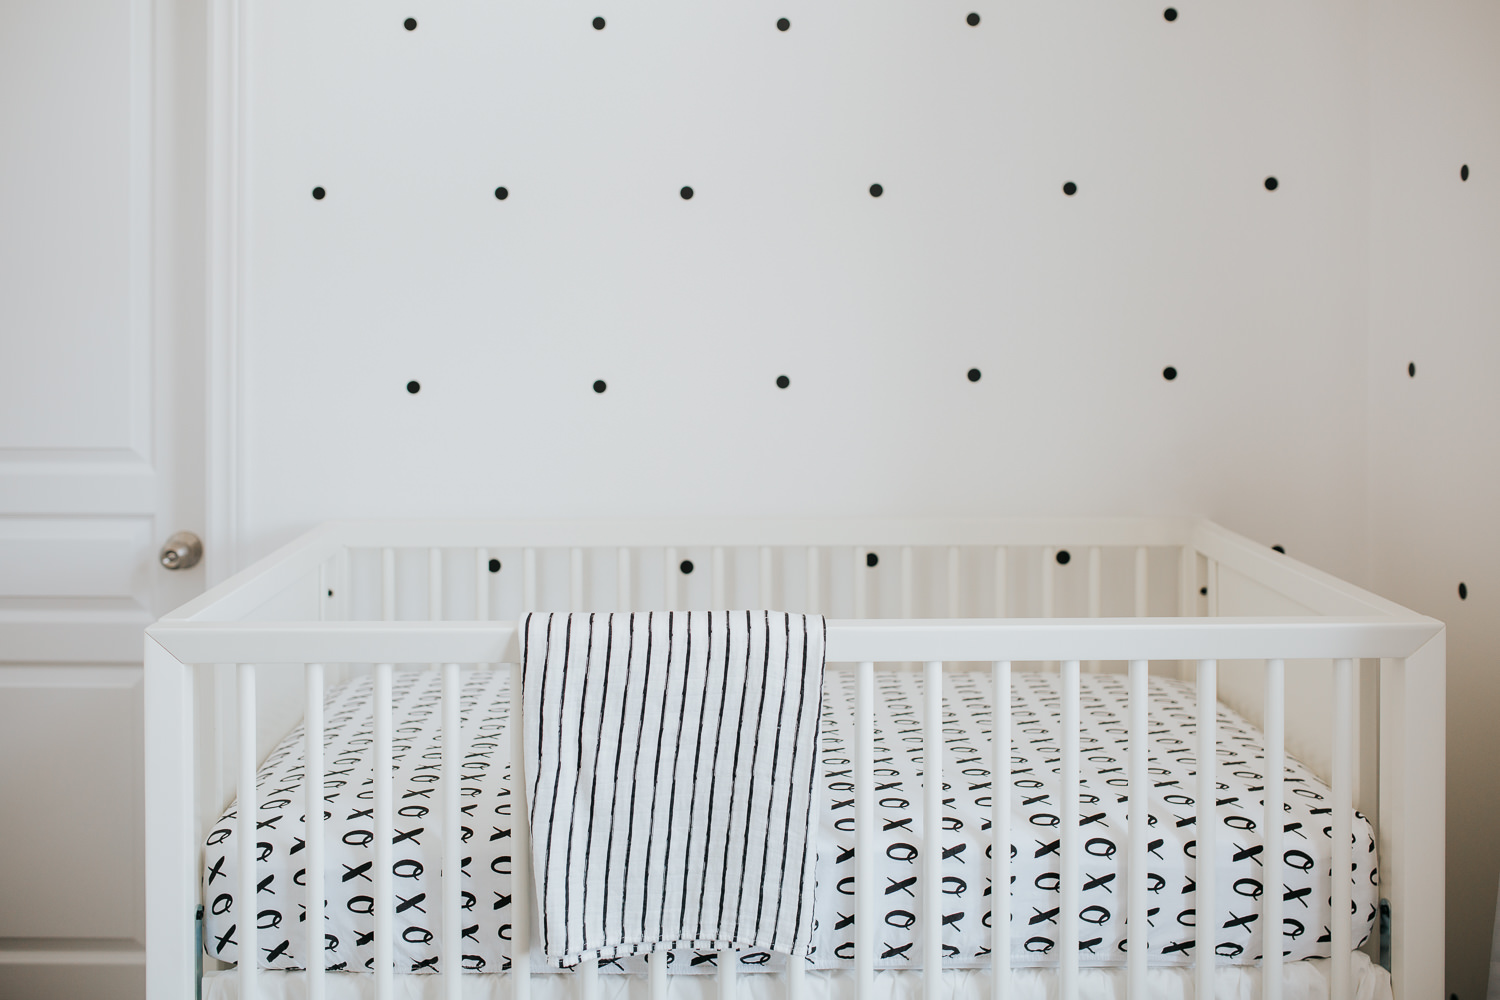 black and white nursery details, white crib and polka dot decals - Stouffville lifestyle photos